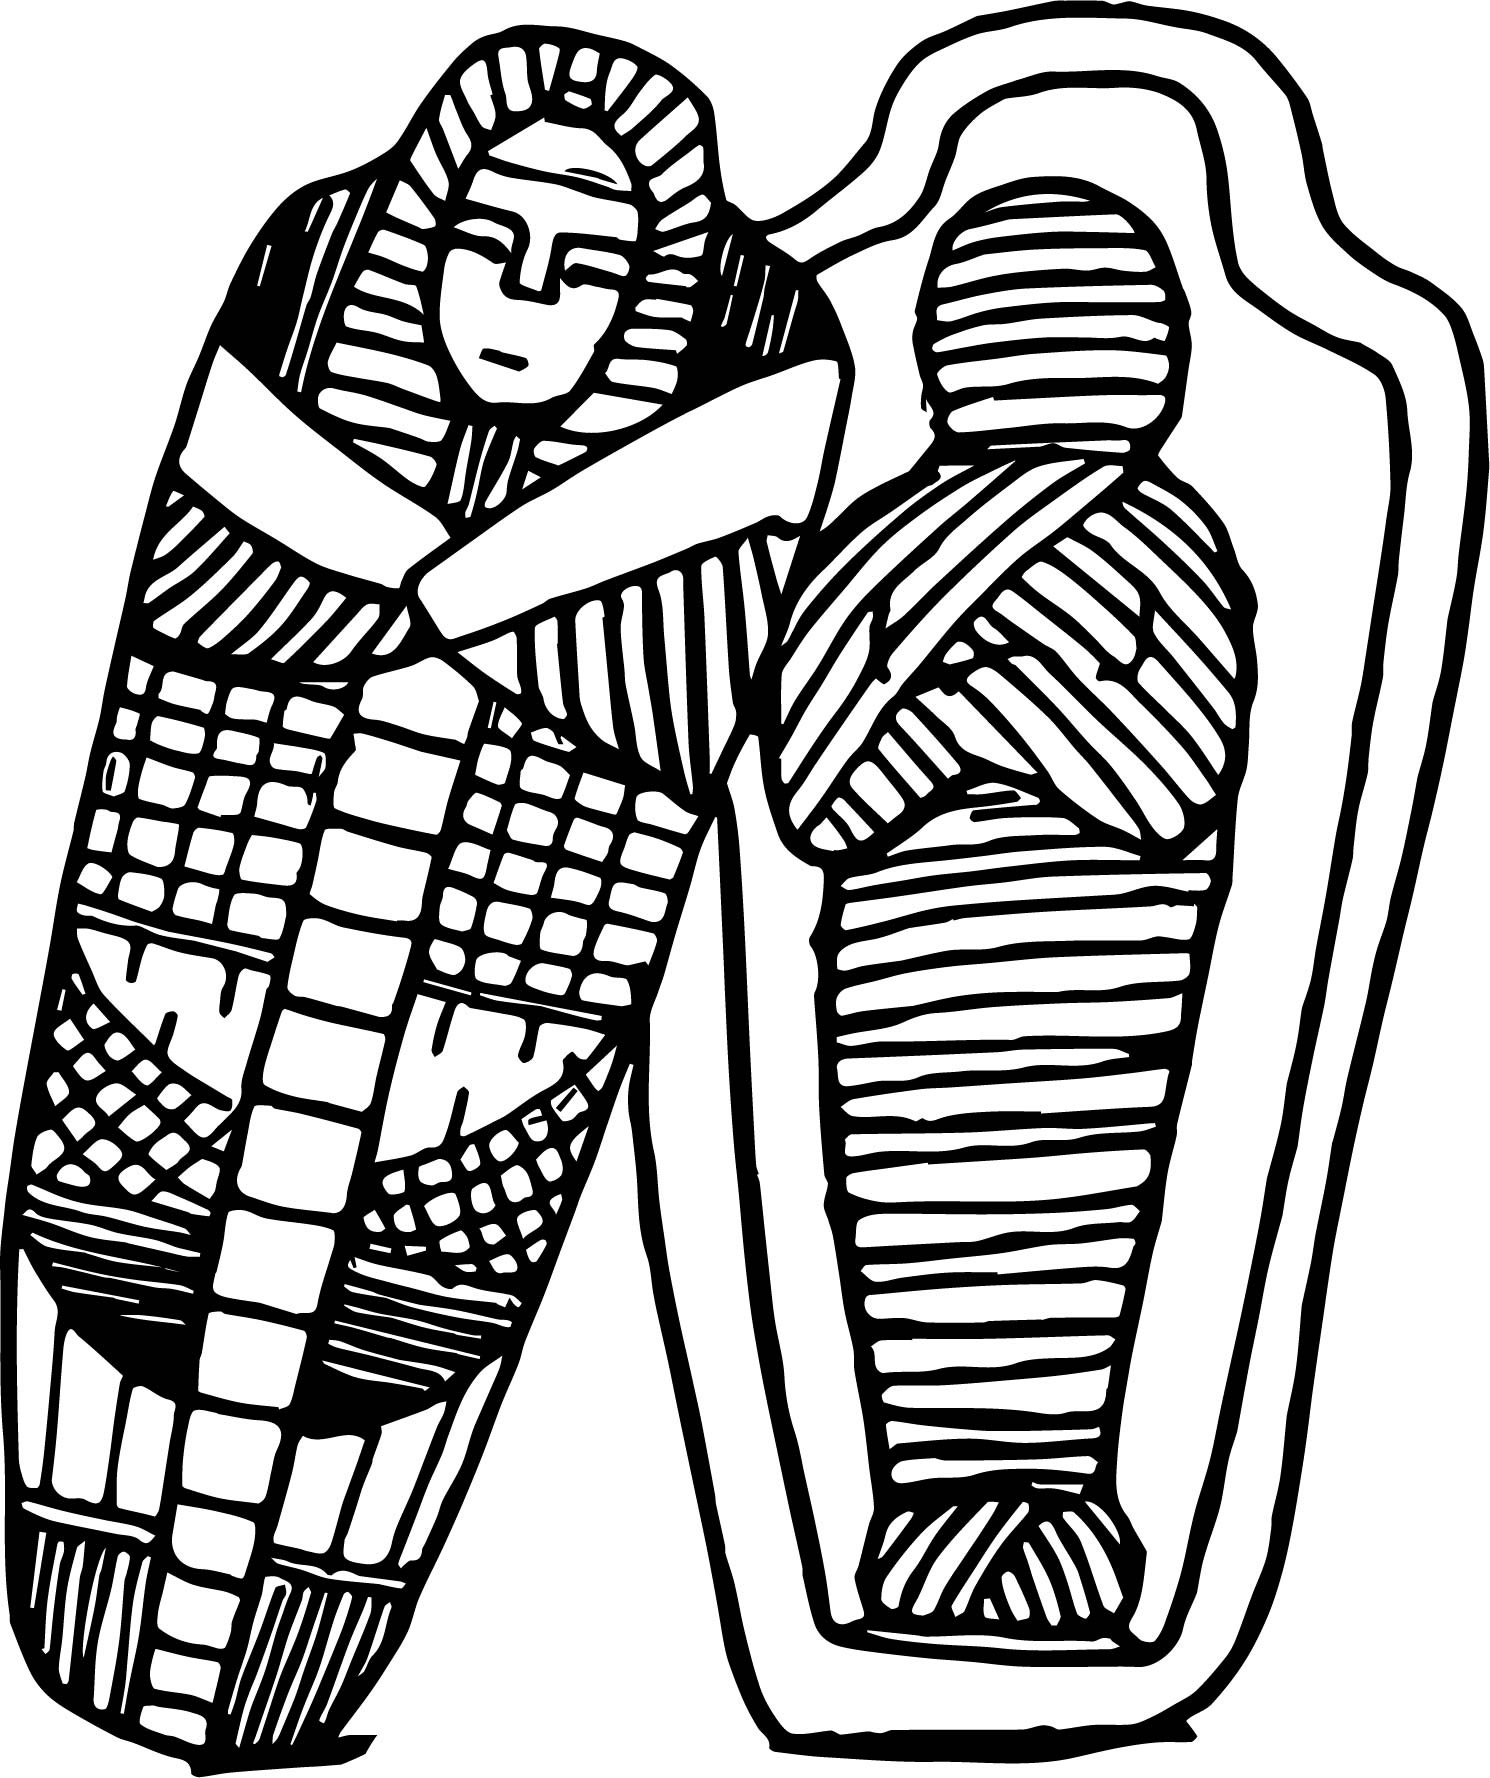 Sarcophagus Coloring Page